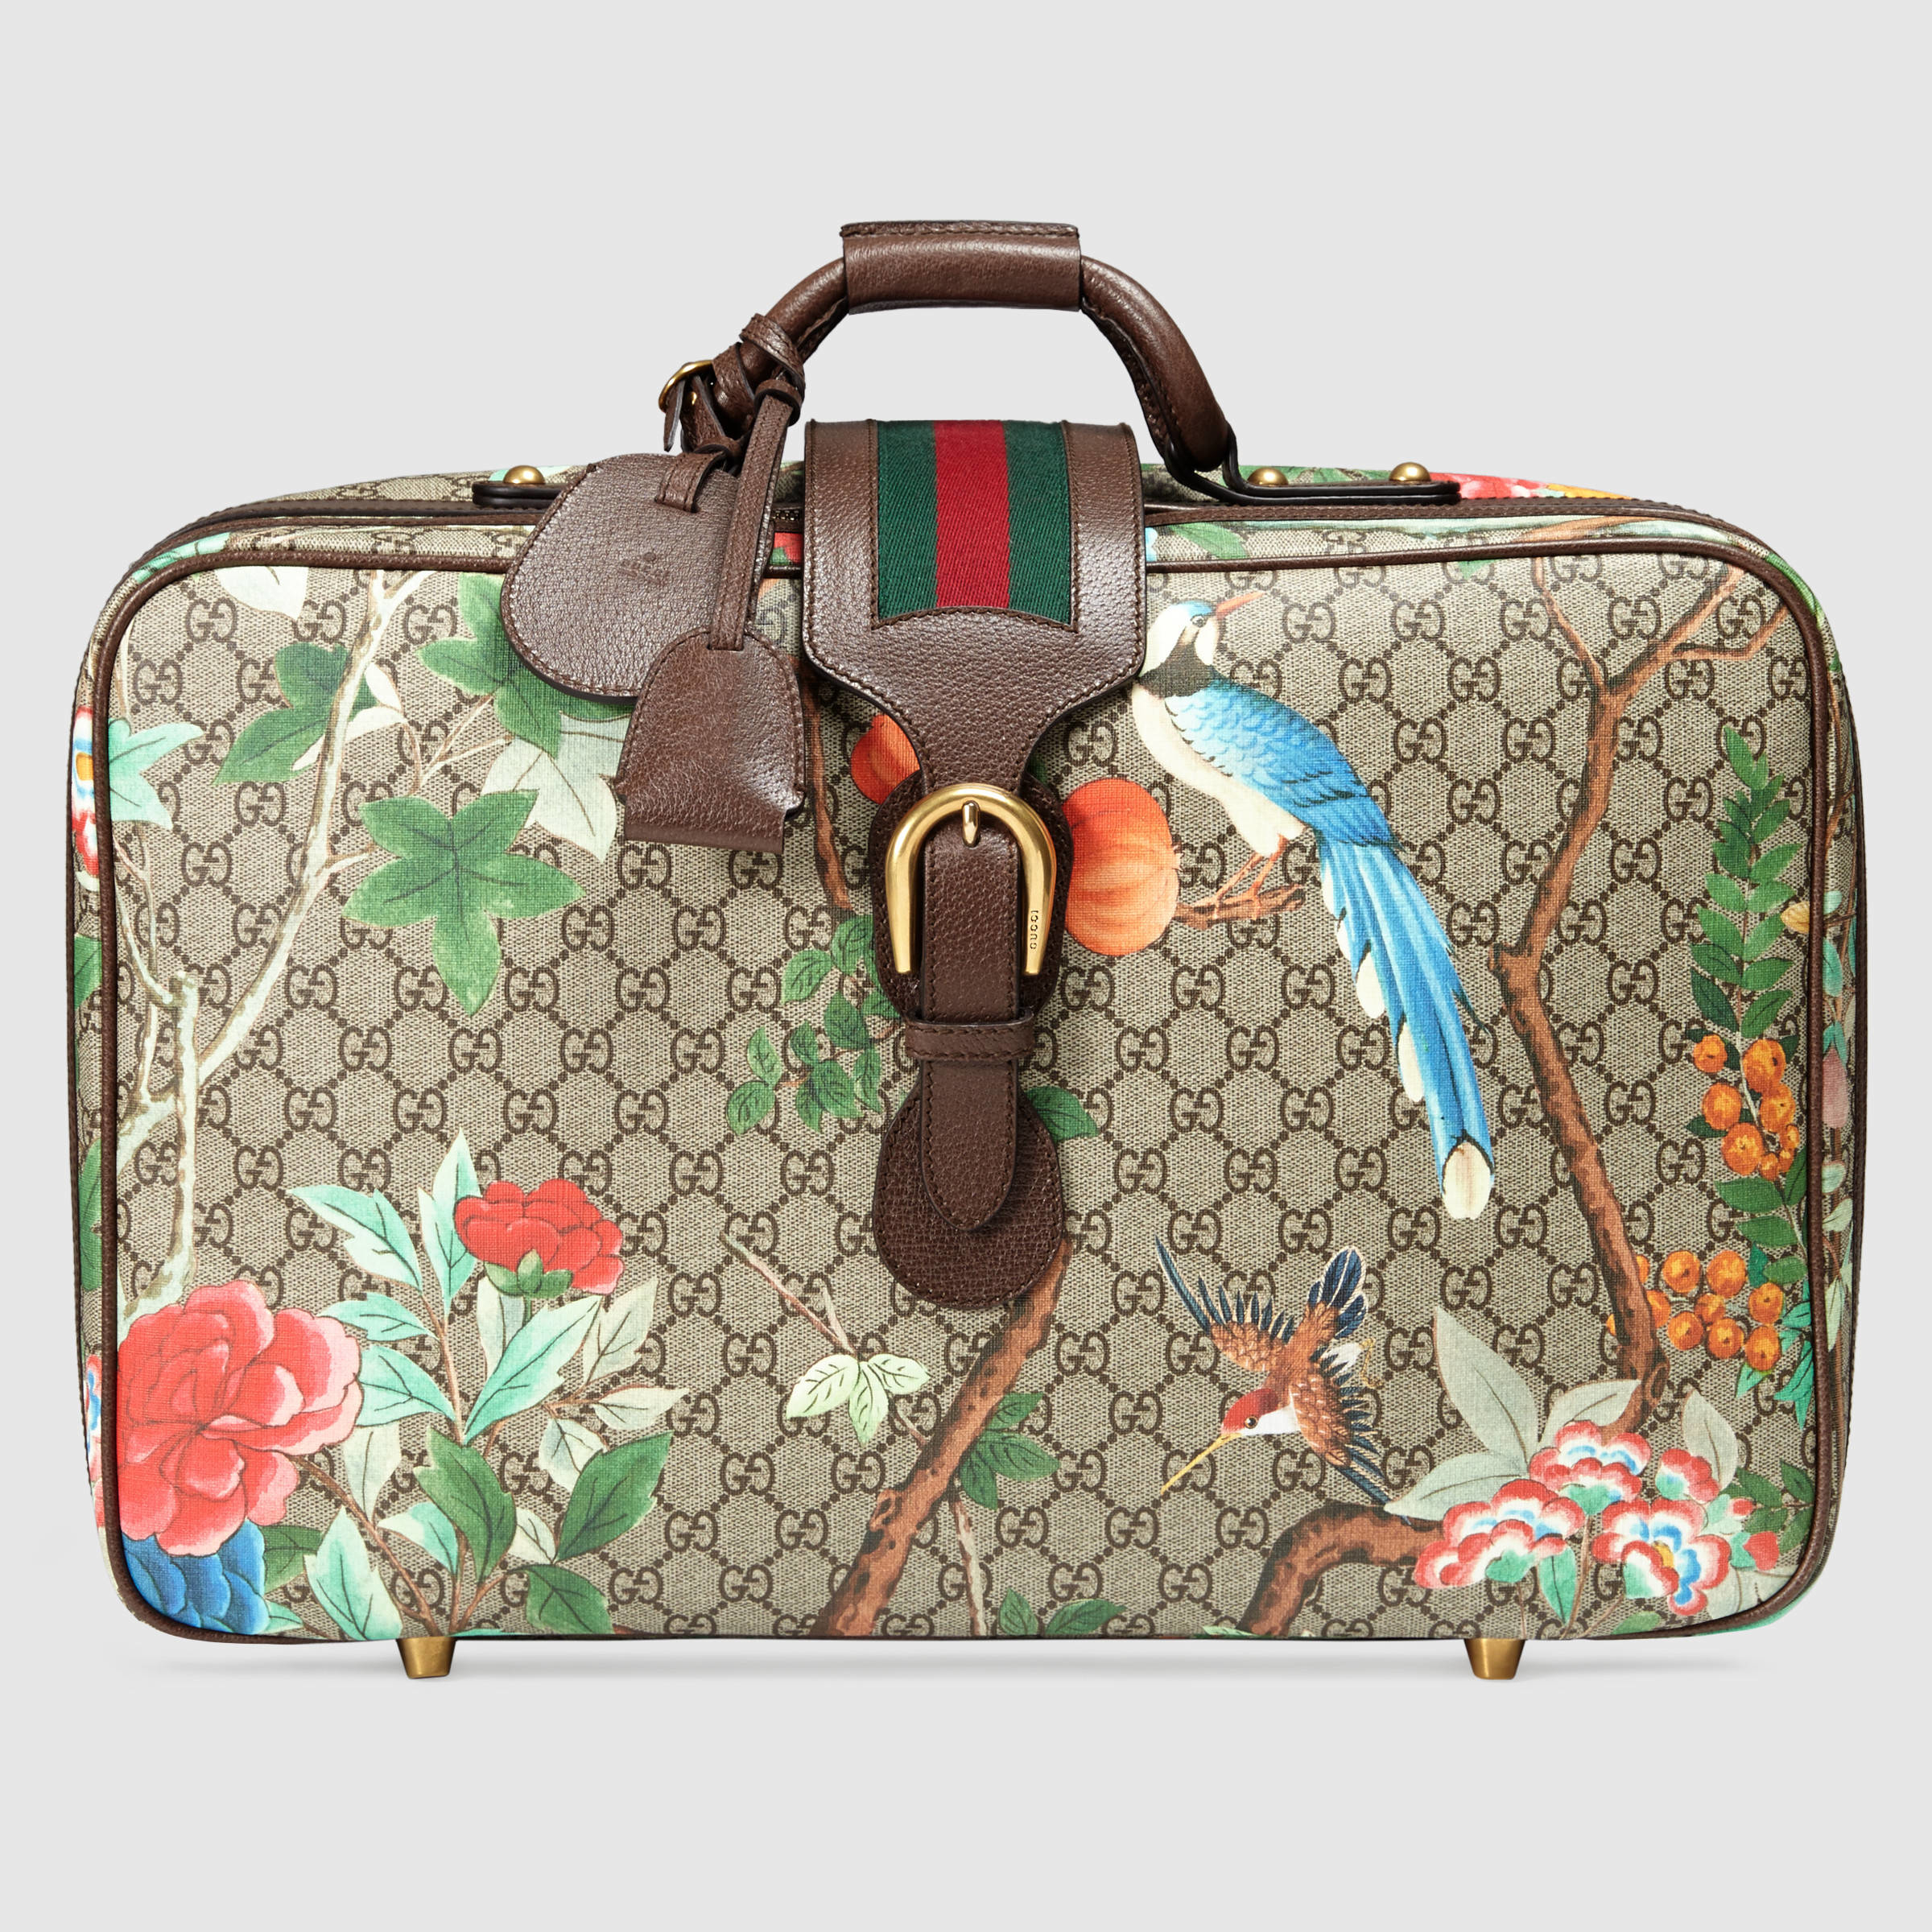 34c6a82feaa8 Gucci Luggage Bag Uk | Stanford Center for Opportunity Policy in ...